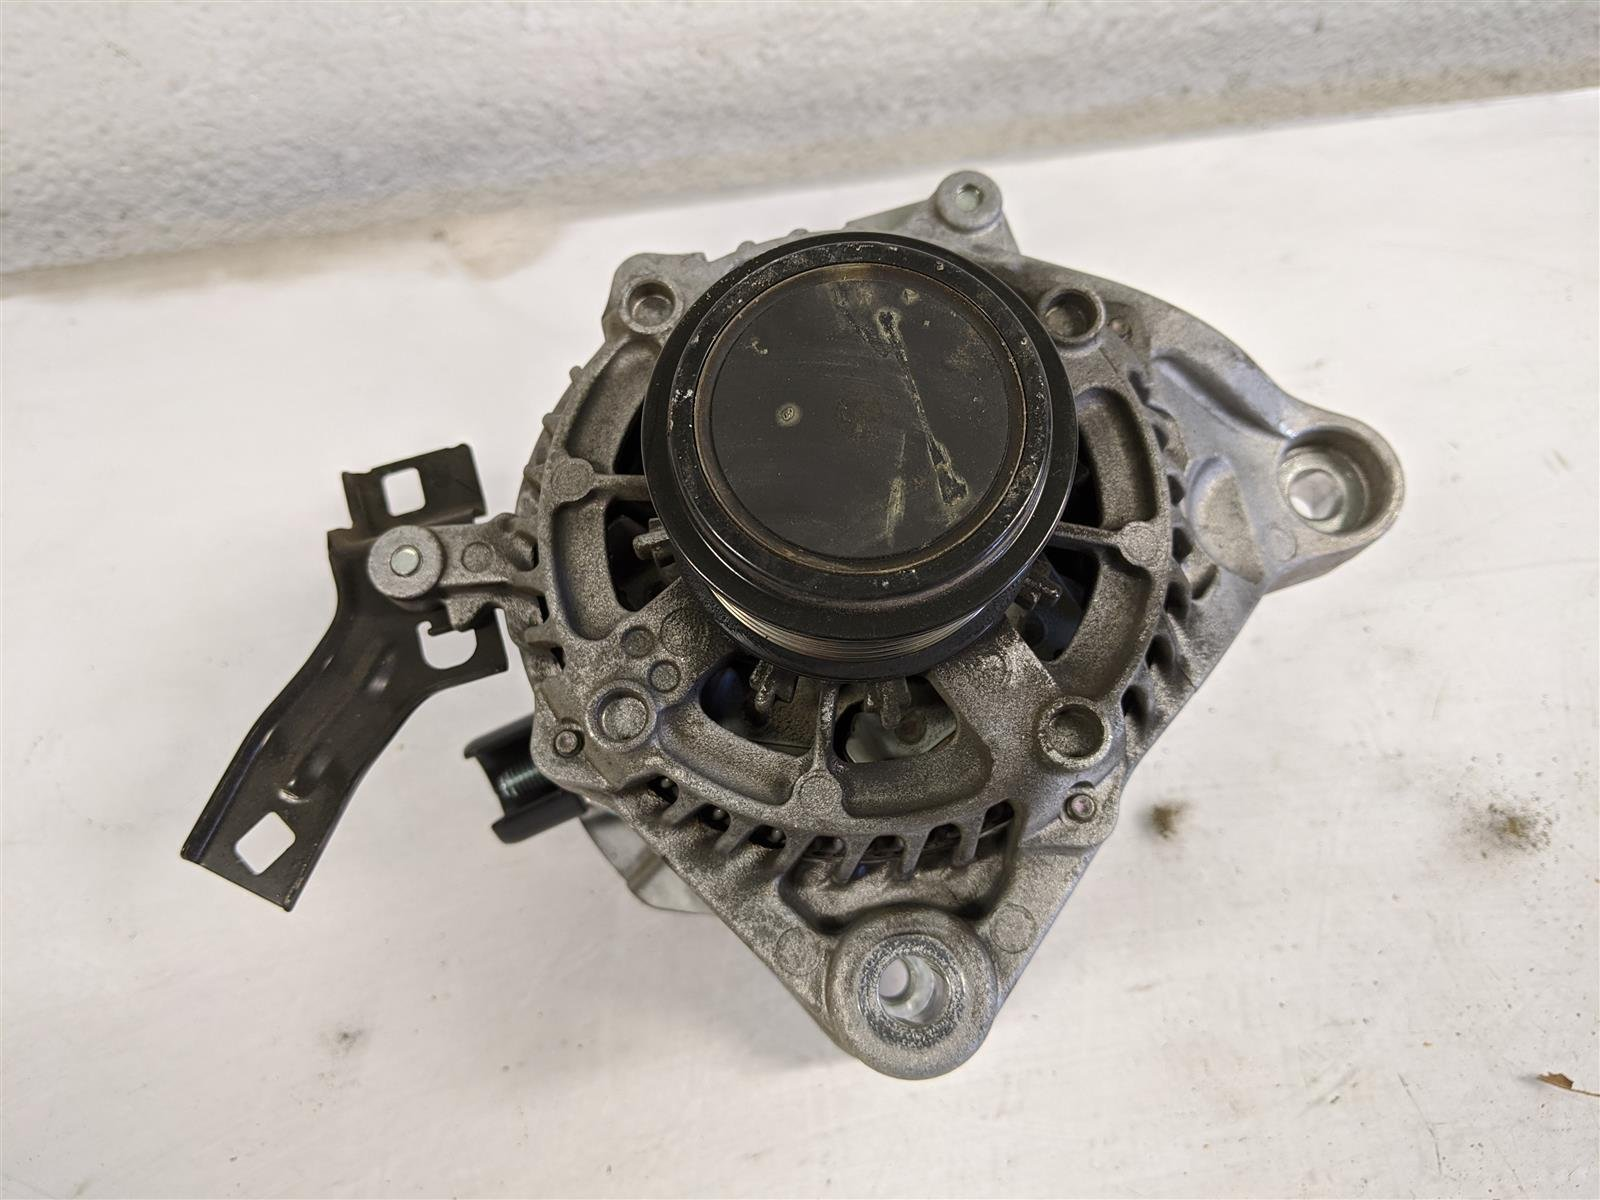 2017 Acura TLX 2.4l Alternator Replacement